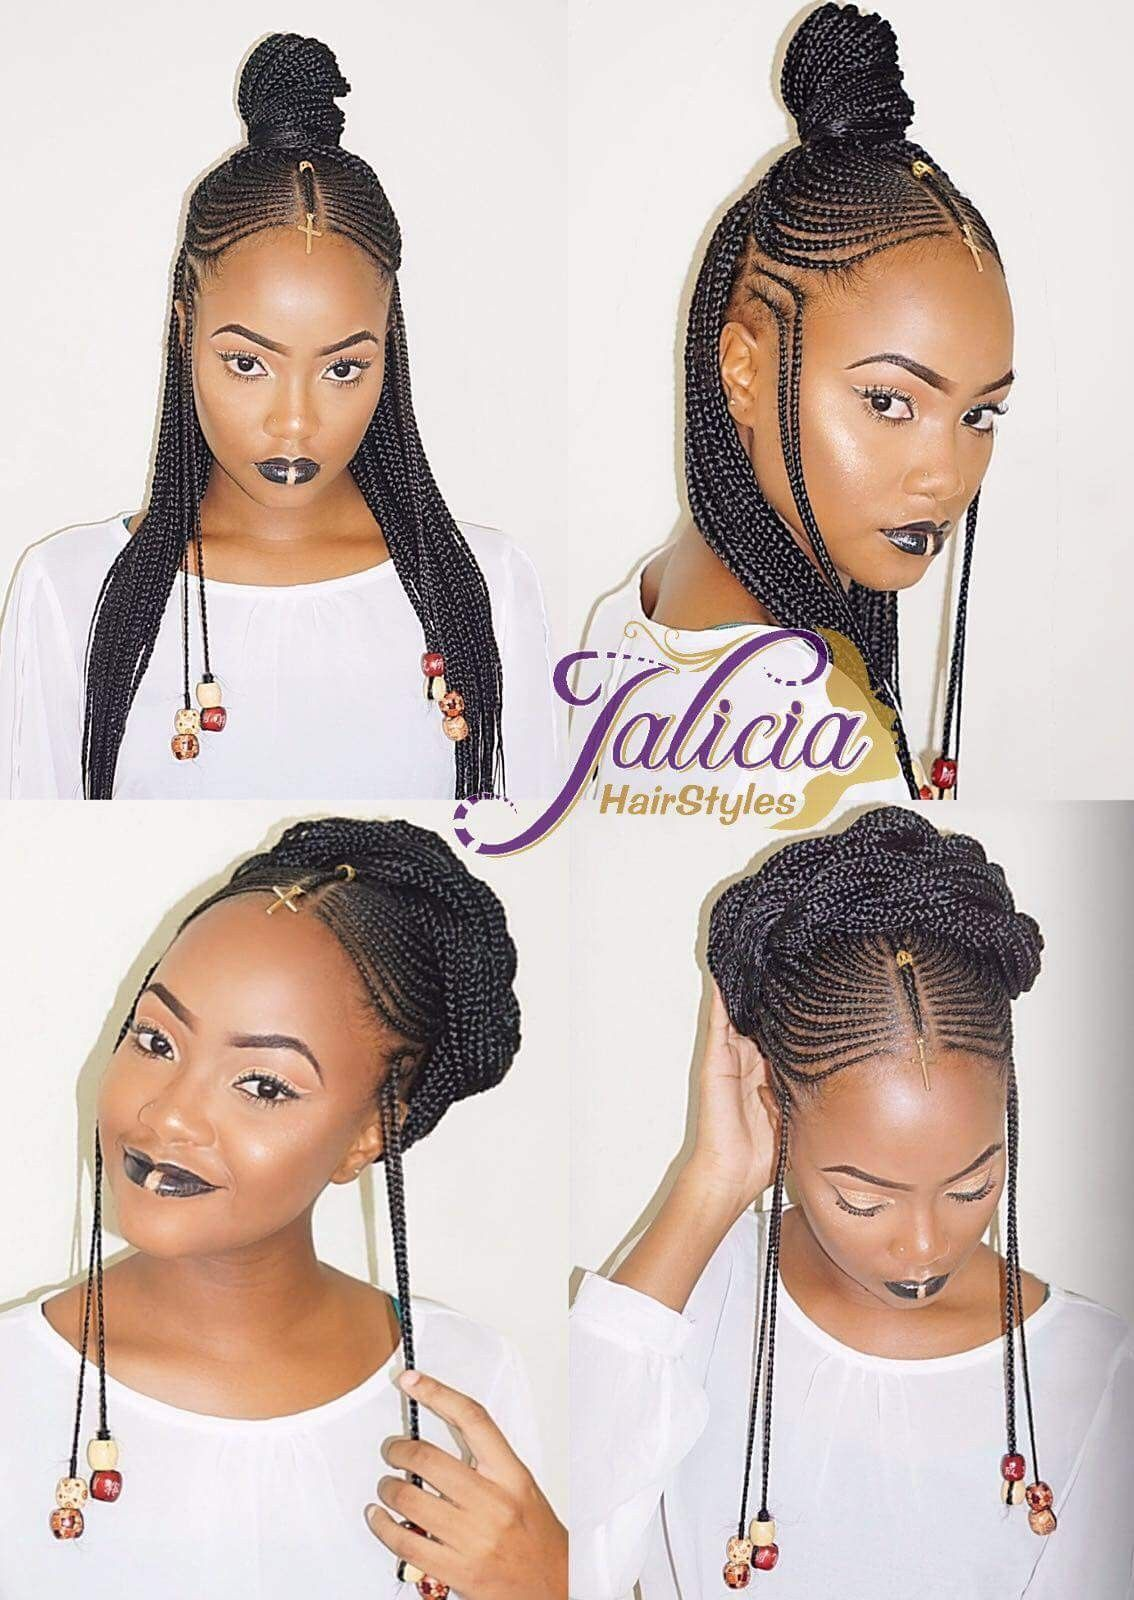 Picture 4 Of 11 101 Best Black Braided Hairstyles 2017 Black Braided Hairstyles Straight Natural Hair Styles African Braids Hairstyles Braids For Black Hair